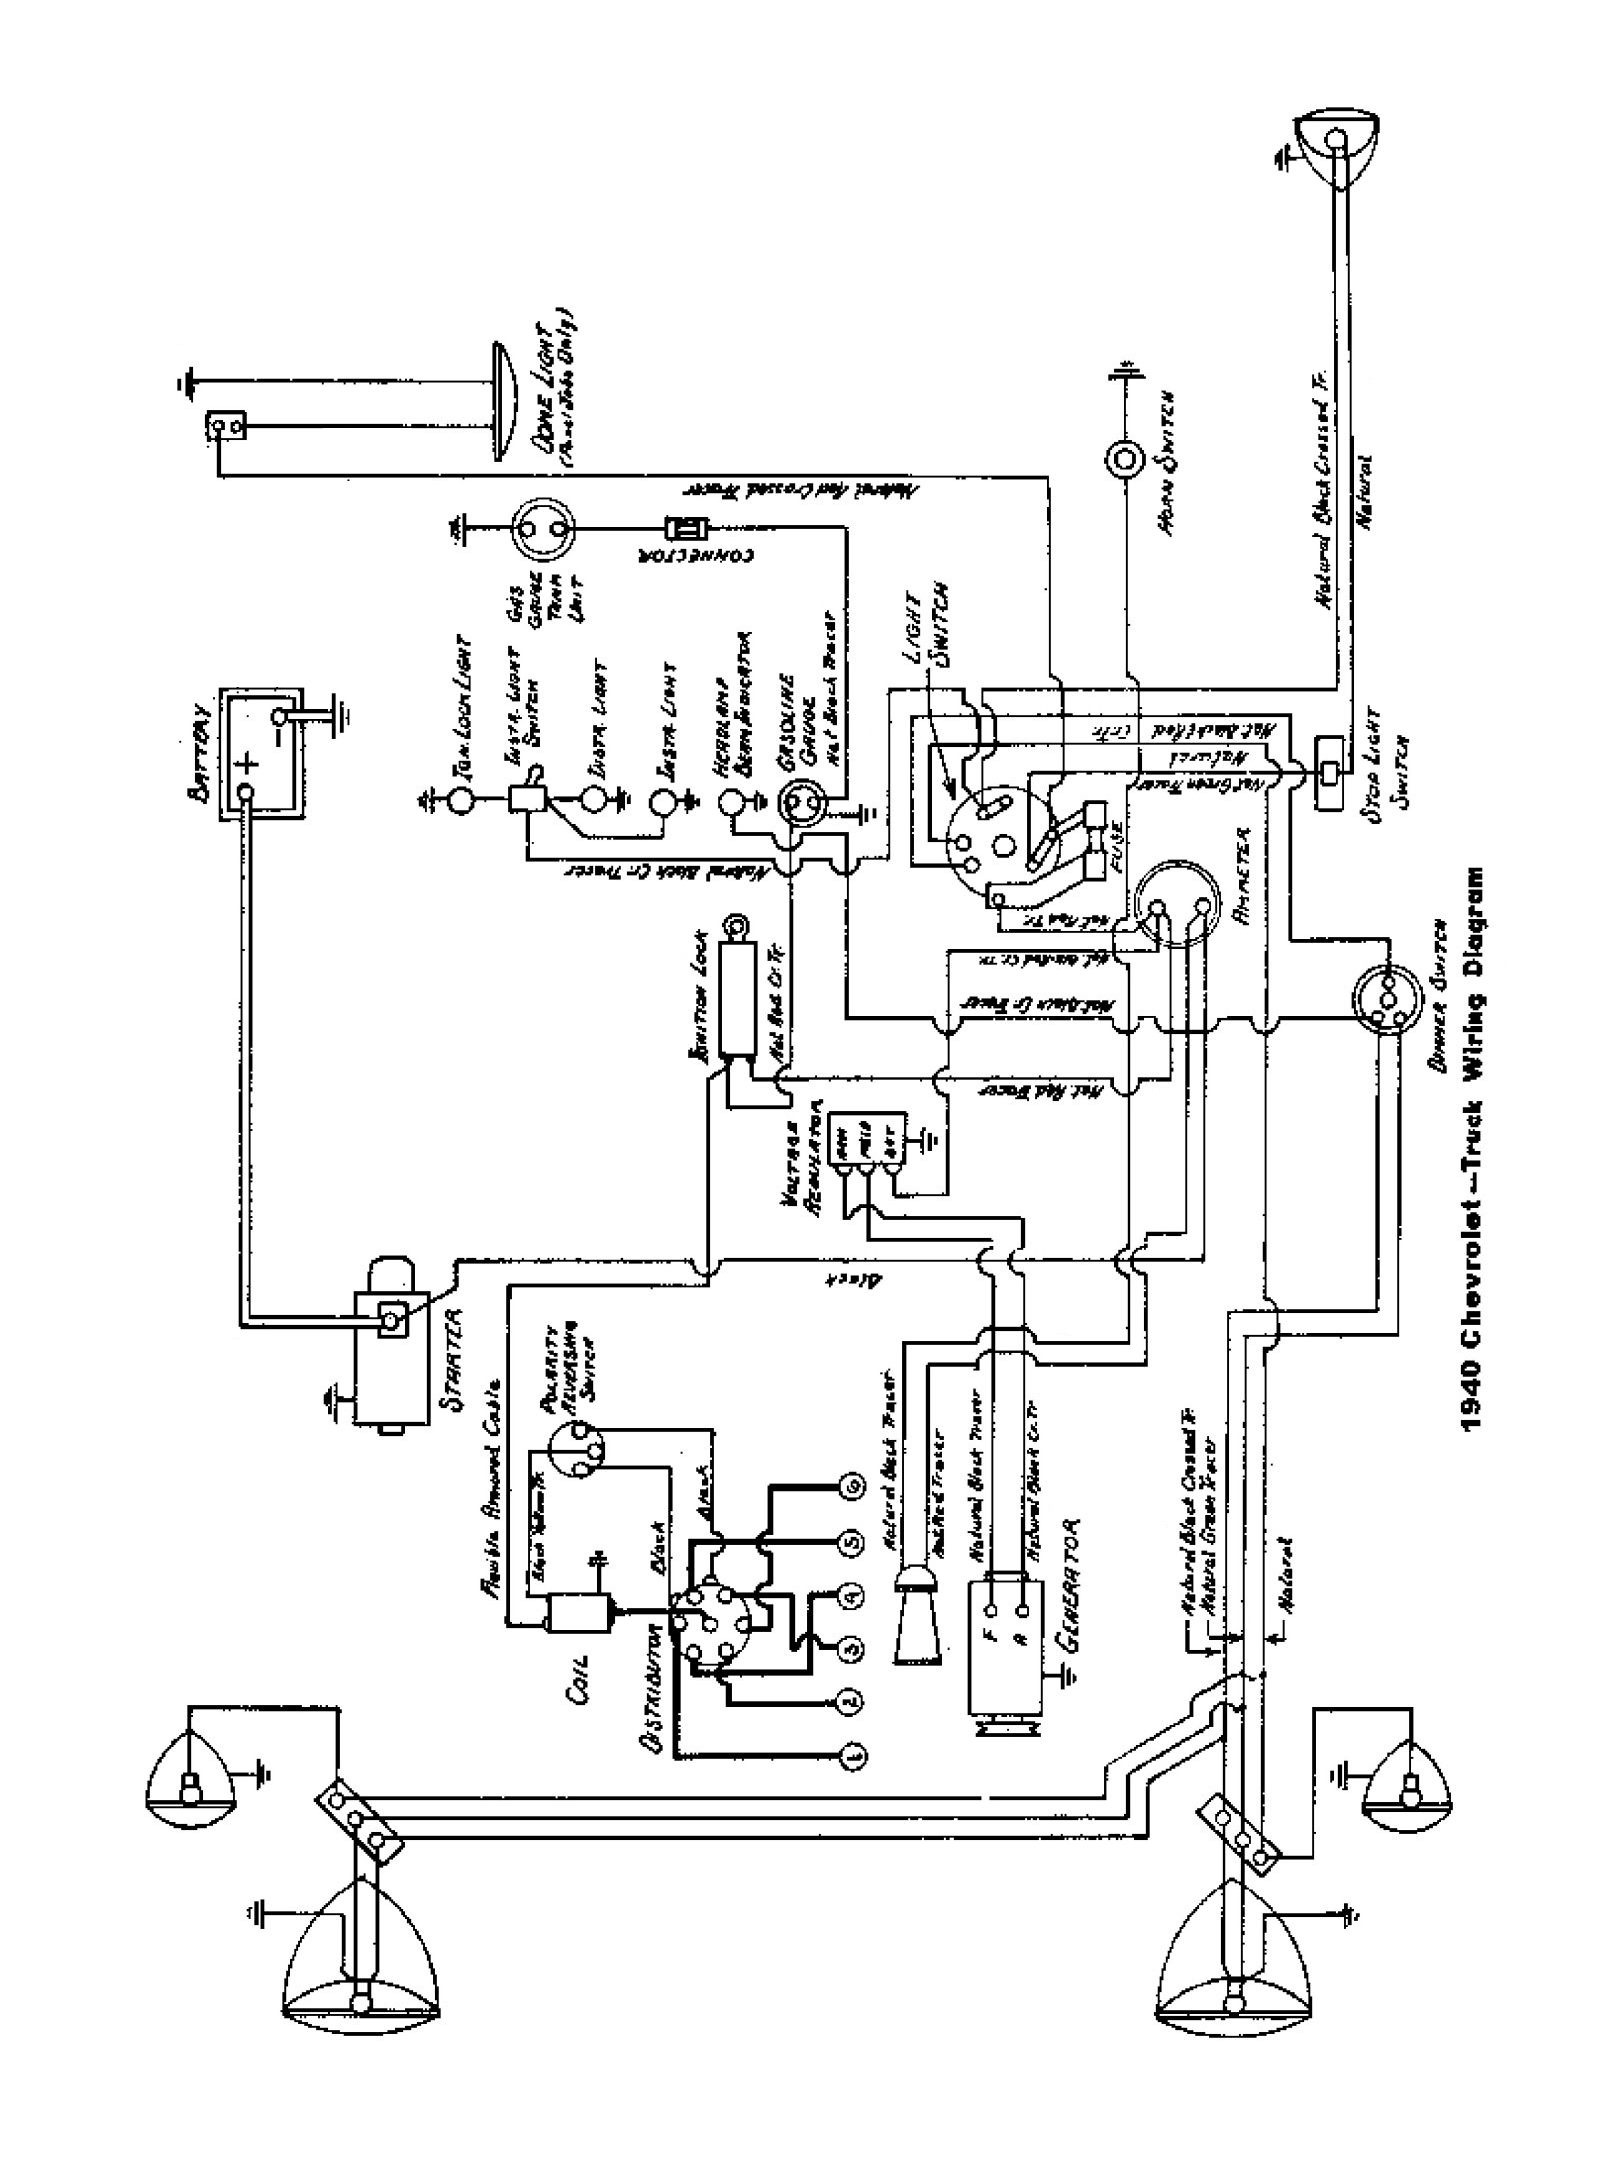 Astounding 1953 Gm Ignition Wiring Wiring Diagram Tutorial Wiring Cloud Staixuggs Outletorg